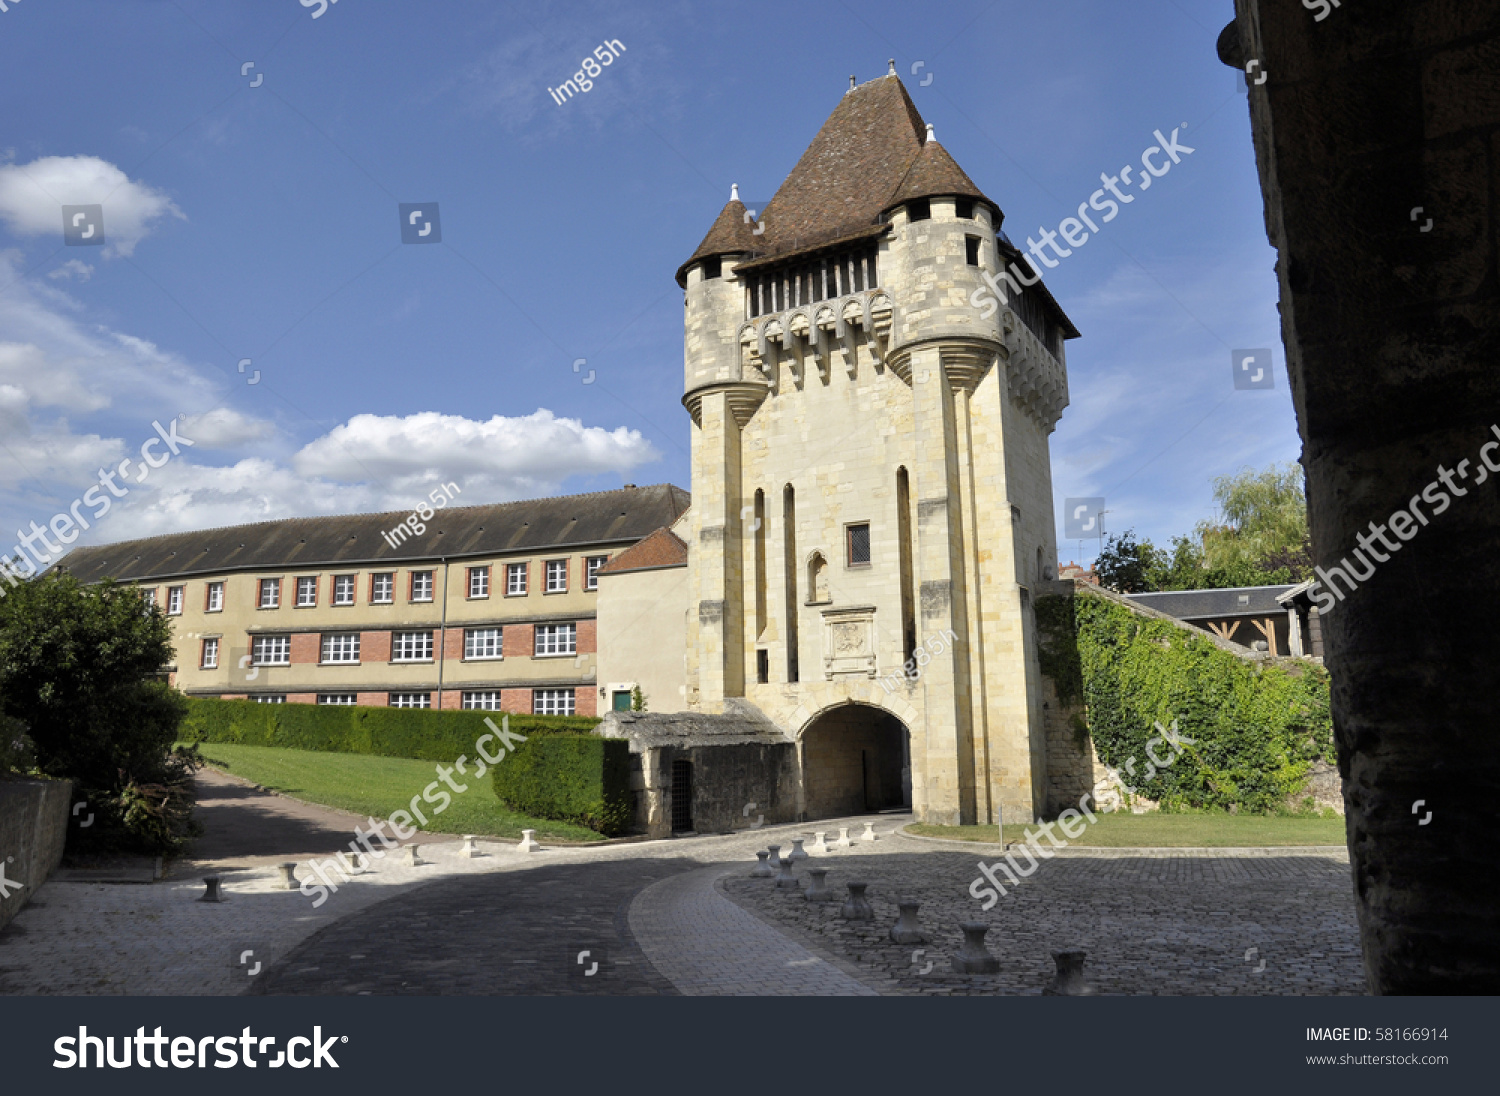 Porte du croux at nevers bourgogne france stock photo for Porte 60 hotel dieu sherbrooke